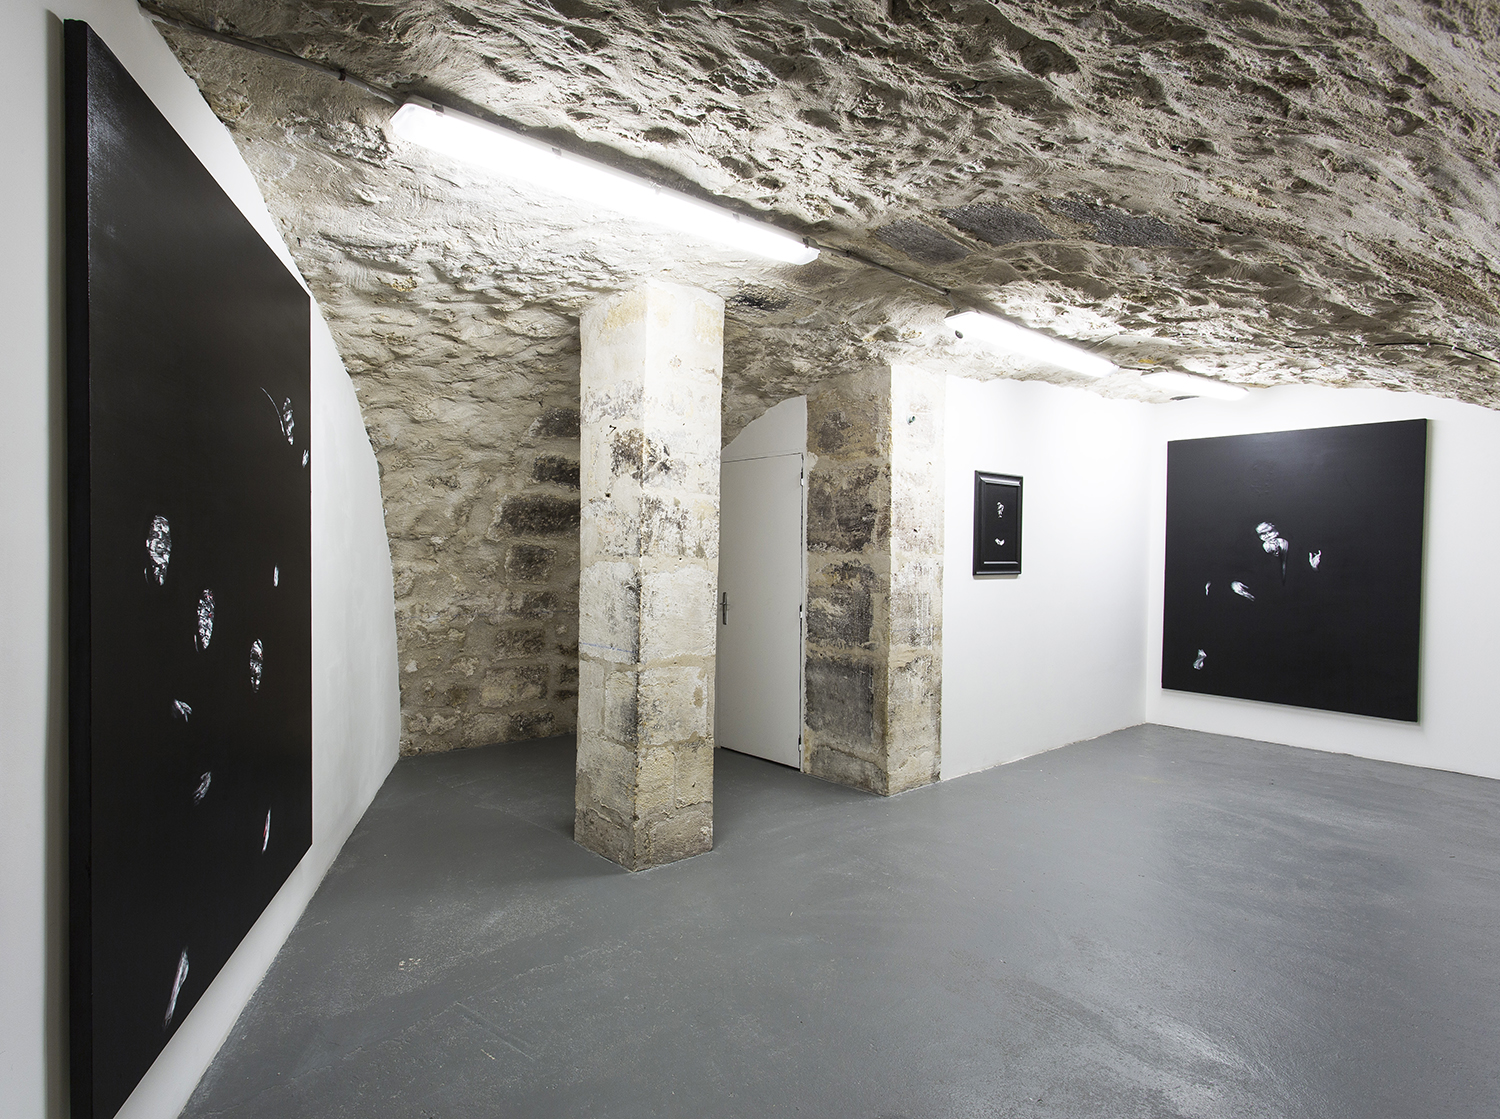 Lorenzo Puglisi, exhibition view, February 2016